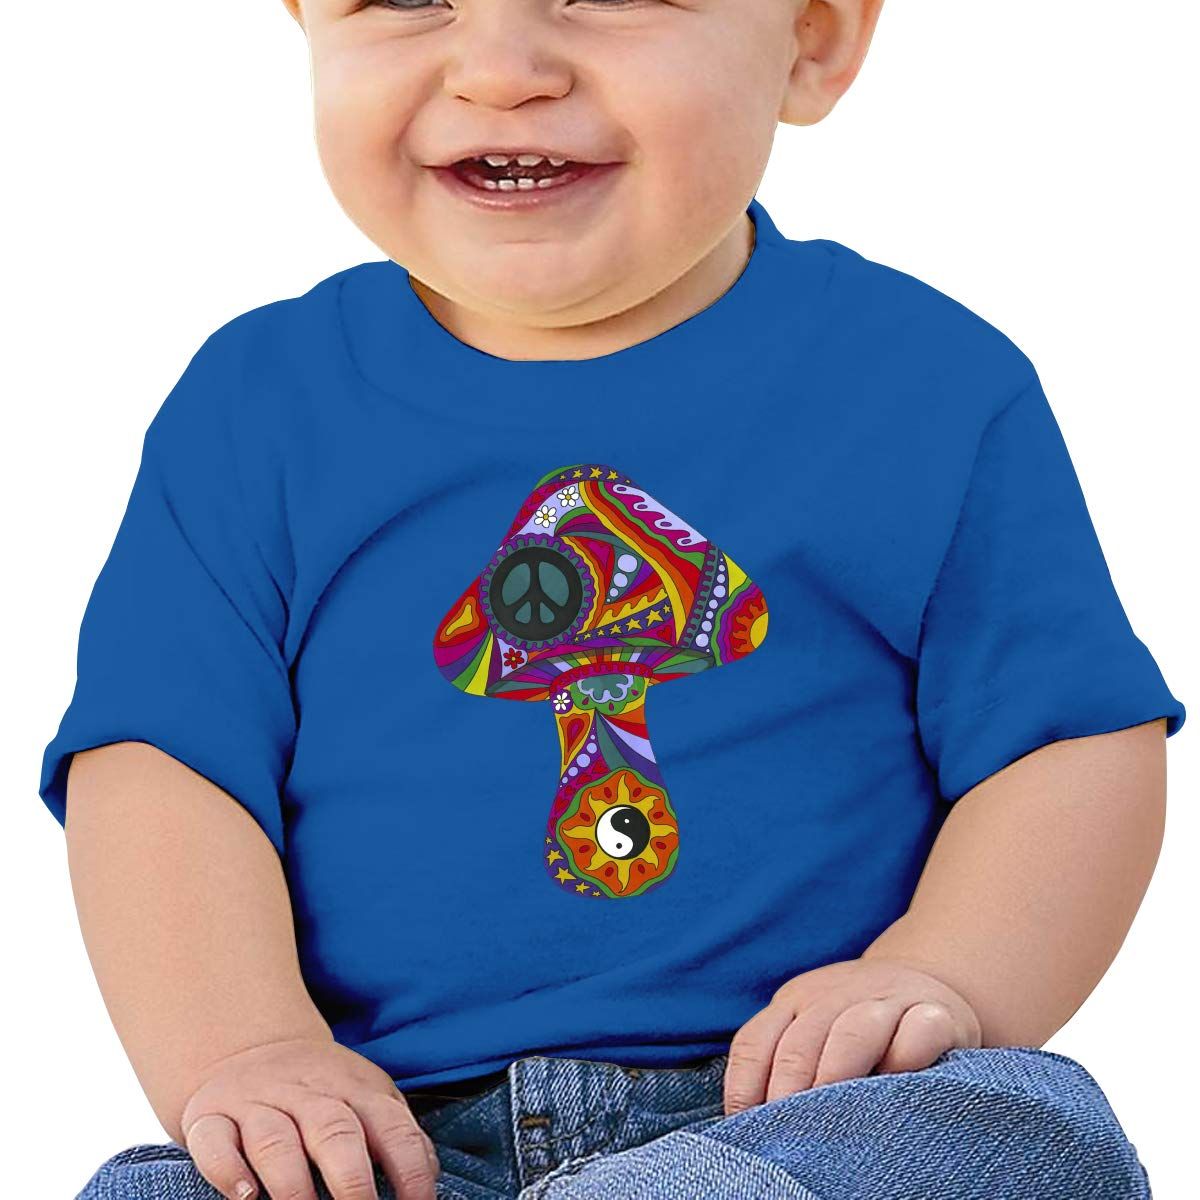 XHX403 Psychedelic Mushroom Infant Kids T Shirt Cotton Tee Toddler Baby 6-18M